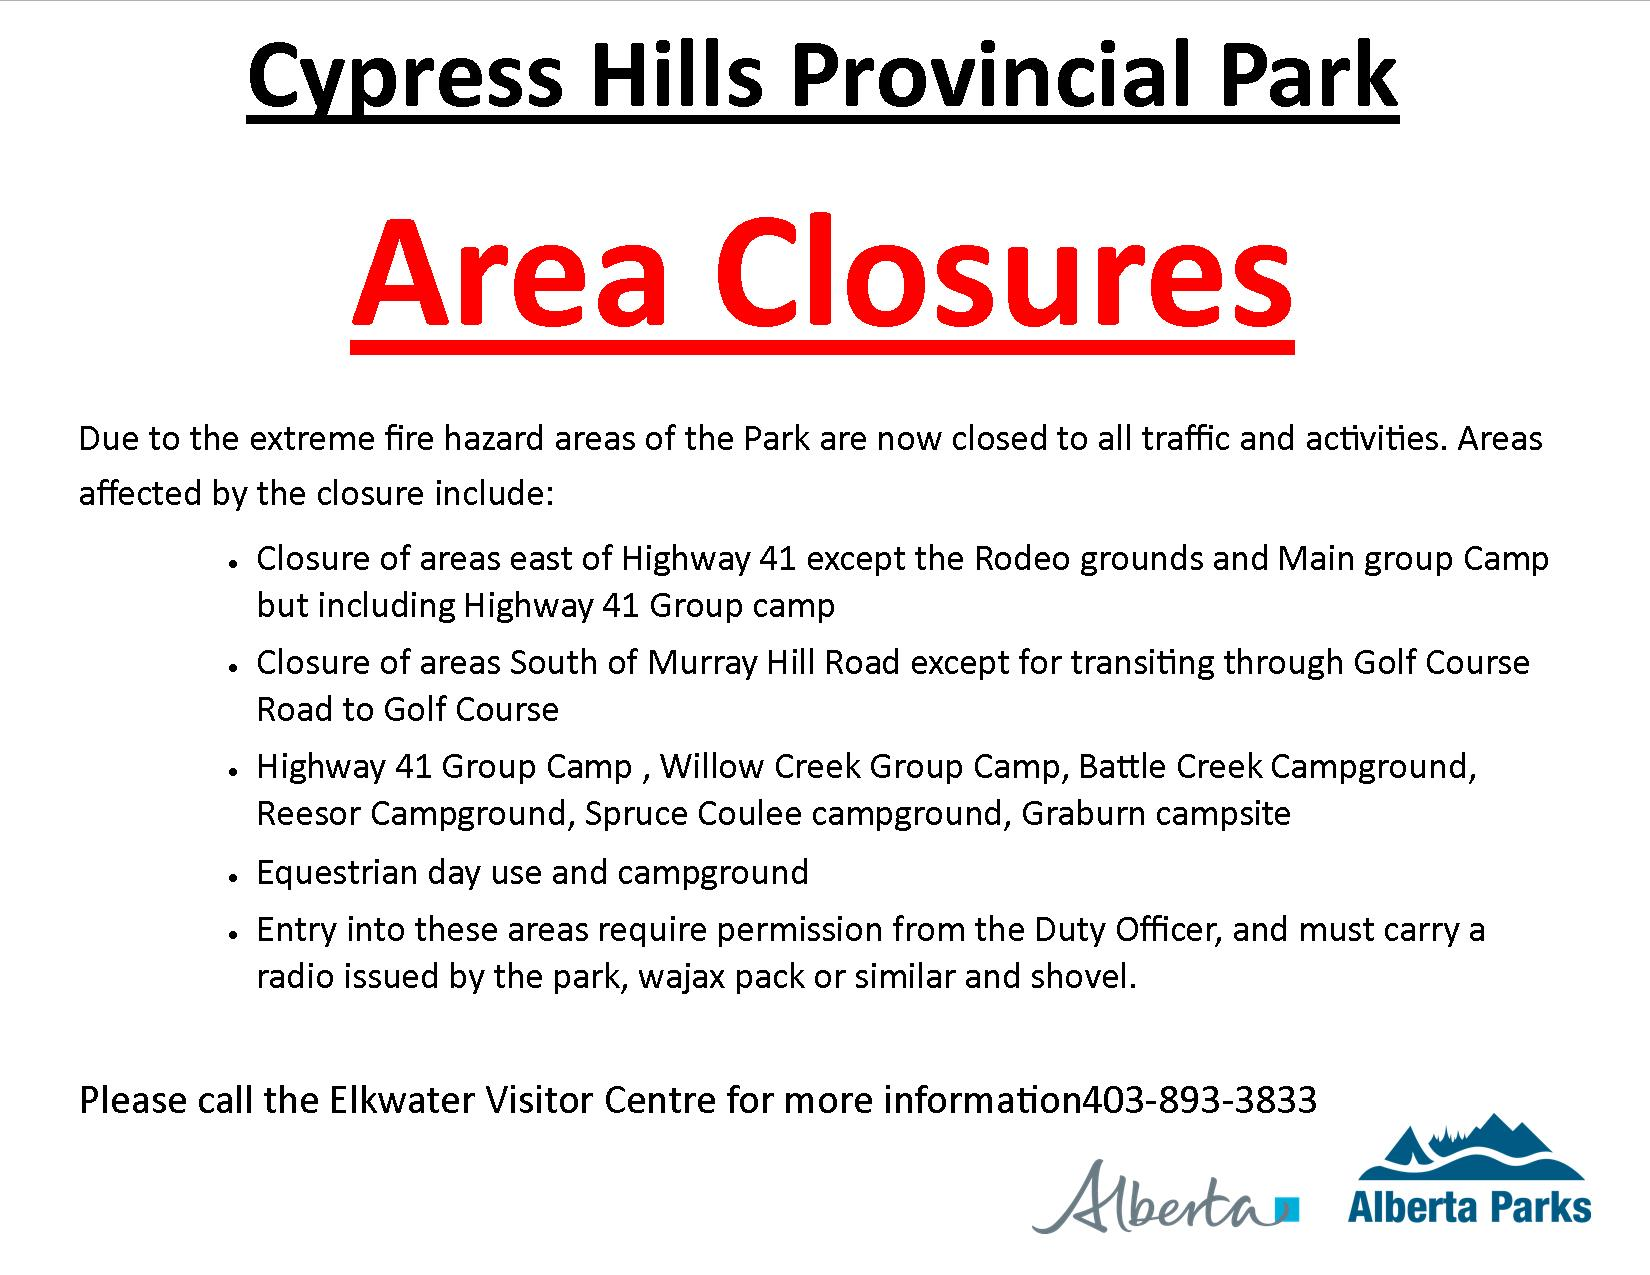 Advisory: Area closures